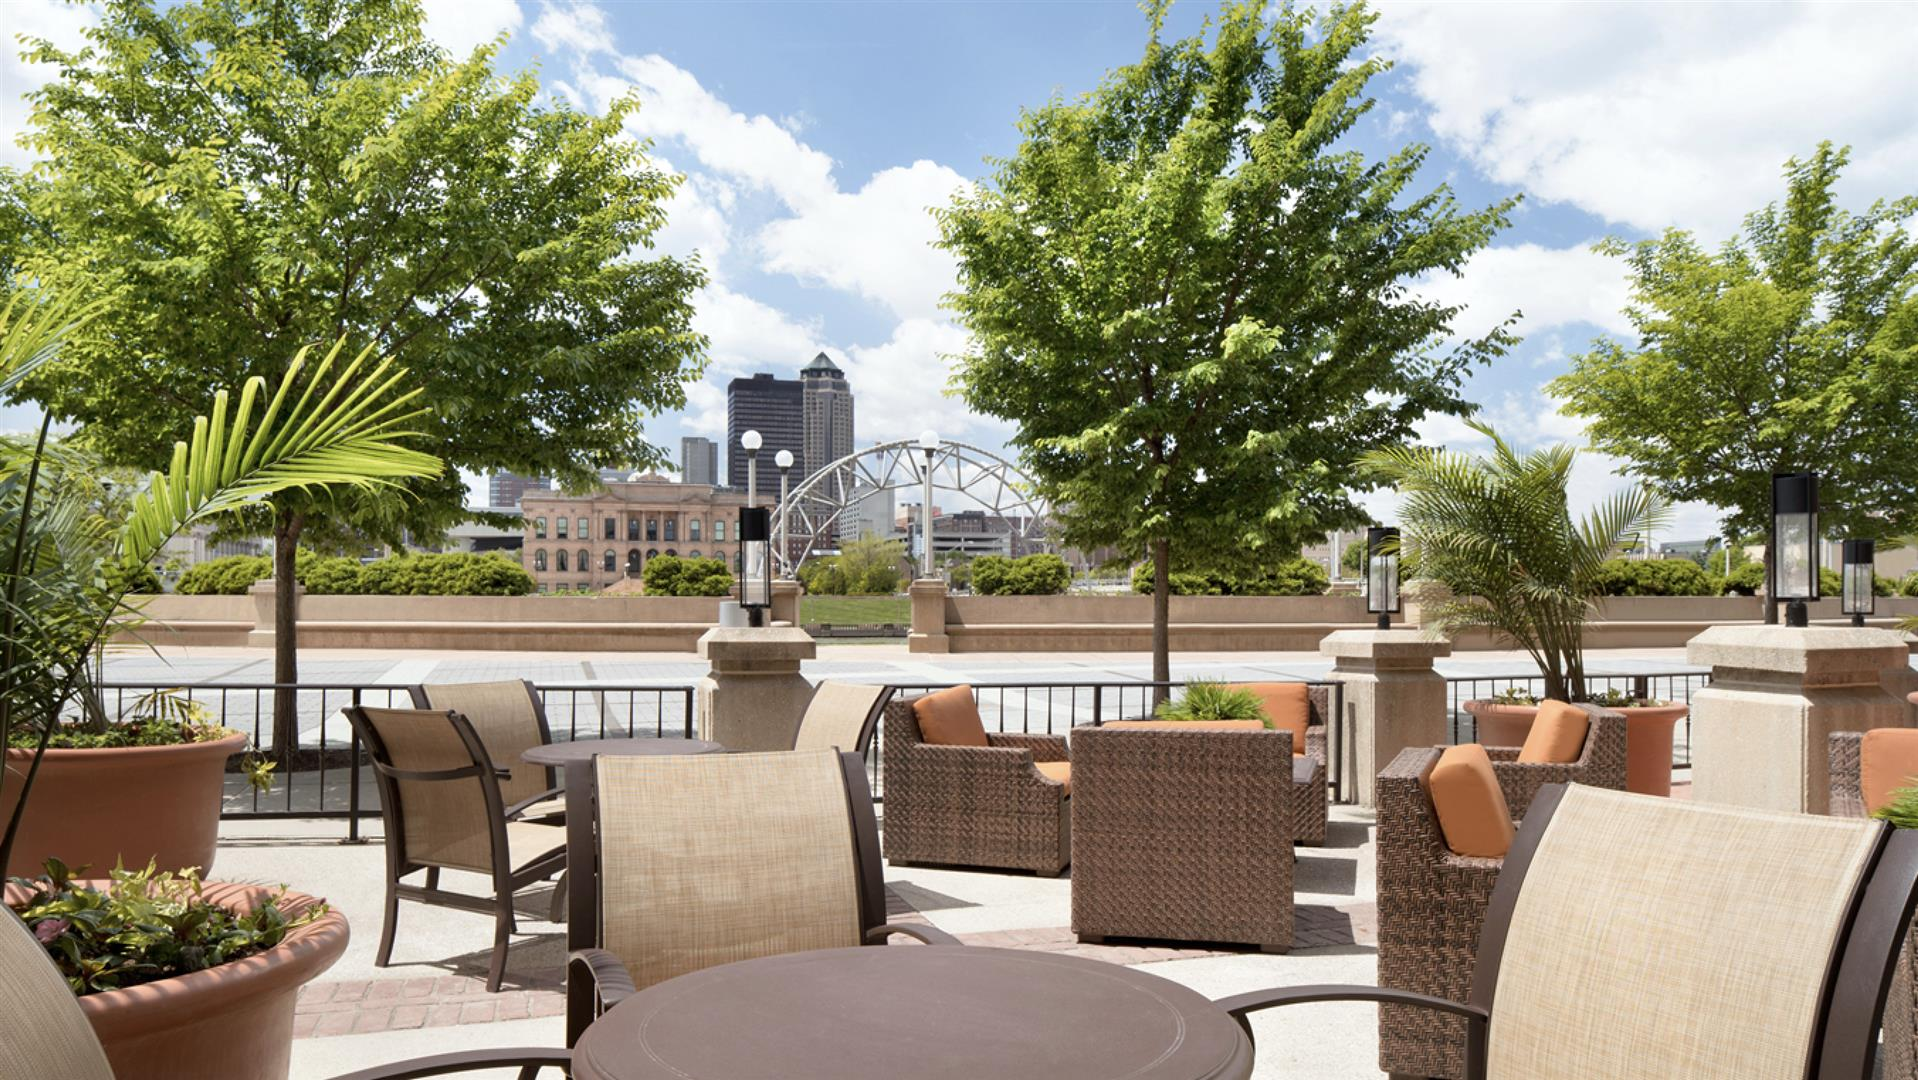 Meetings and events at Emby Suites by Hilton Des Moines ... on map of california coast lompoc, map of glendale cemetery des moines ia, map of des moines county iowa, des moines skywalk hotels,